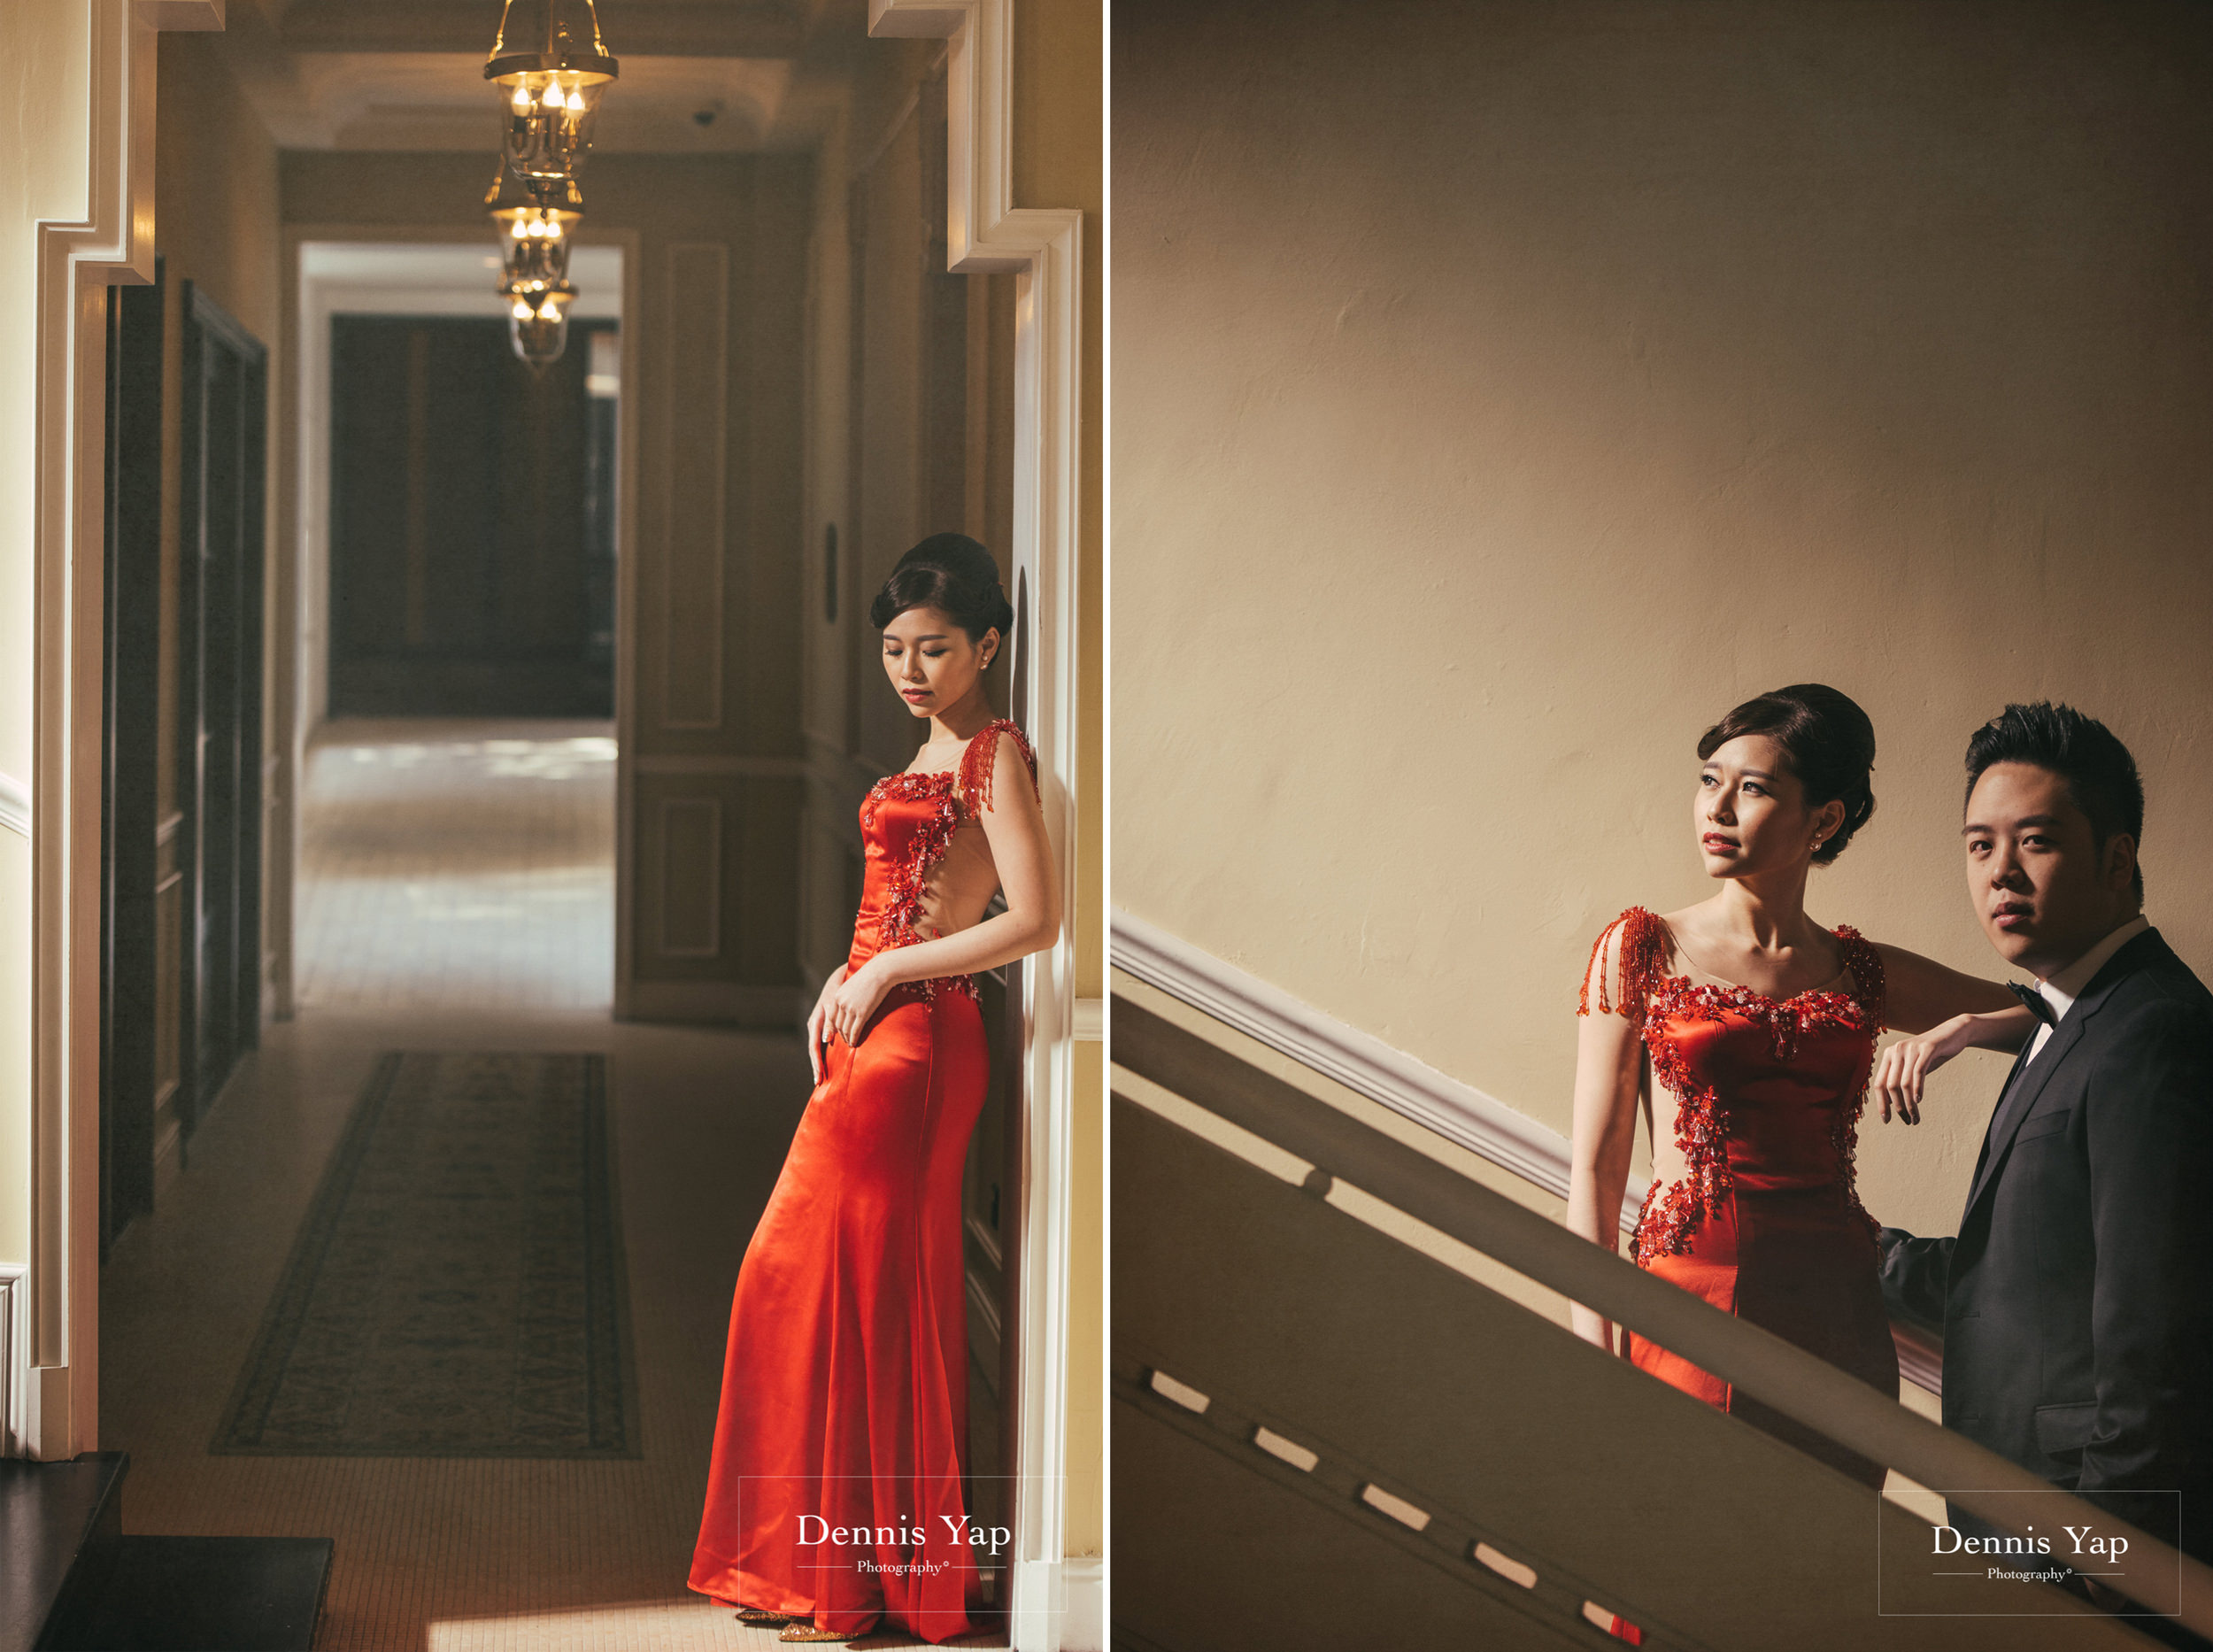 ivan constance pre wedding majestic hotel dennis yap photography luxury style calm serious-2.jpg